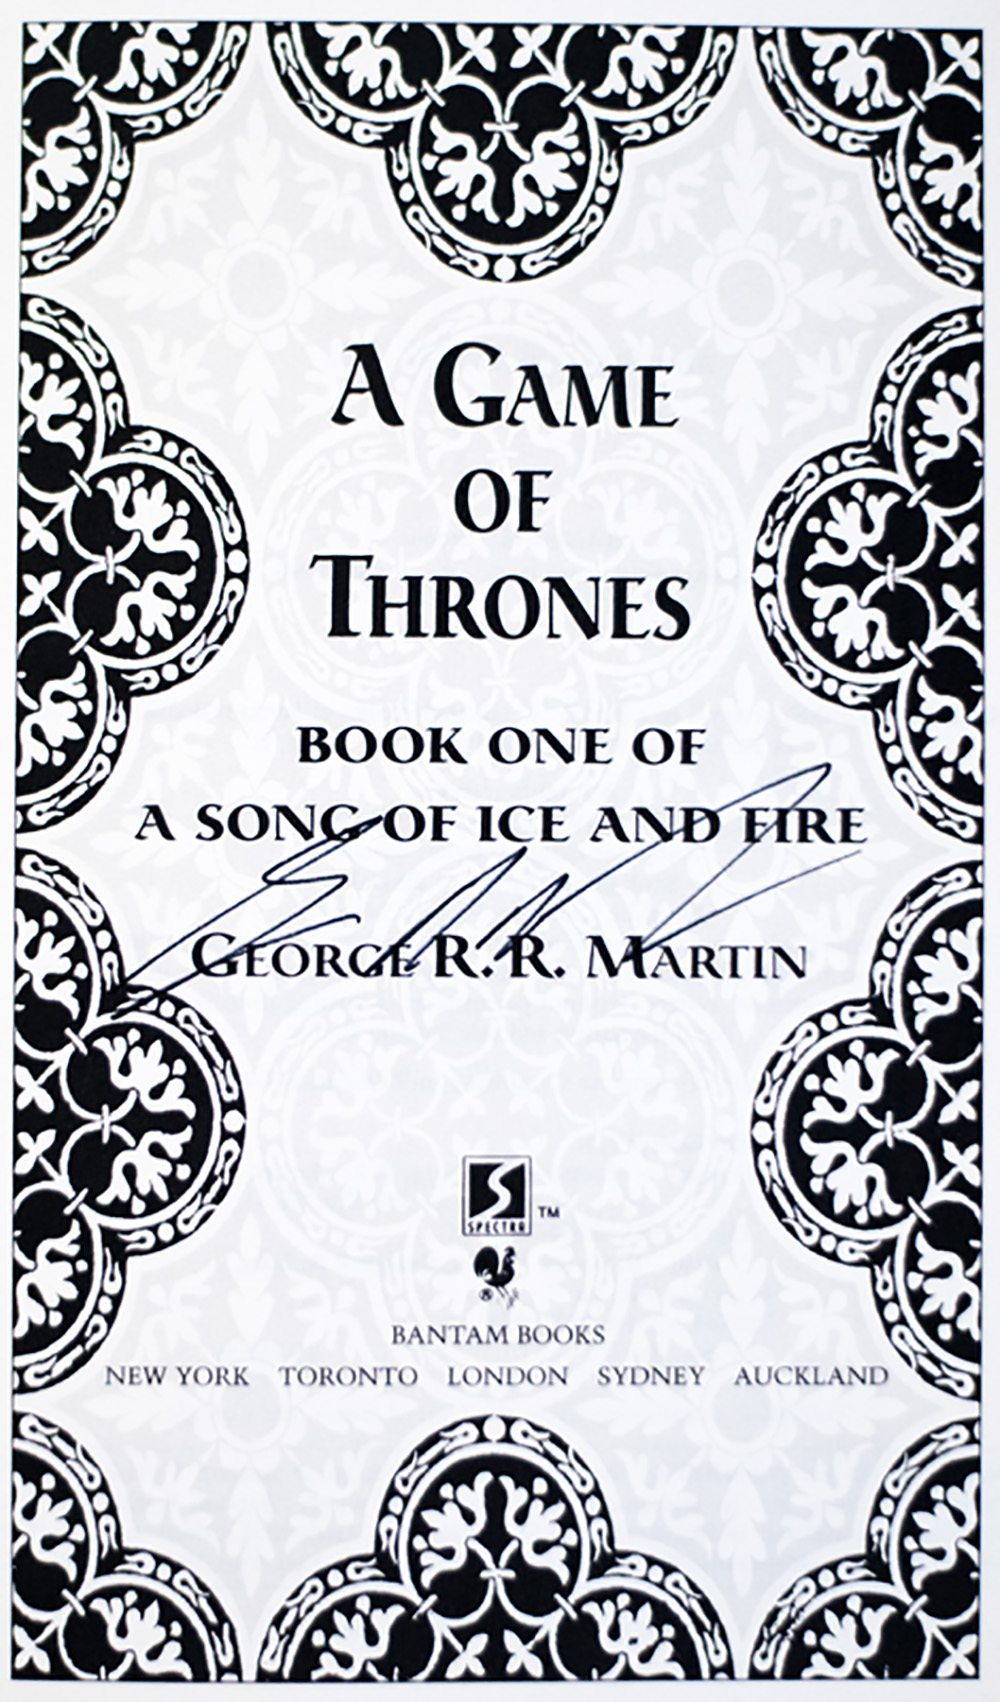 Game of Thrones; A Clash of Kings; A Storm of Swords; A Feast for Crows; A Dance with Dragons.